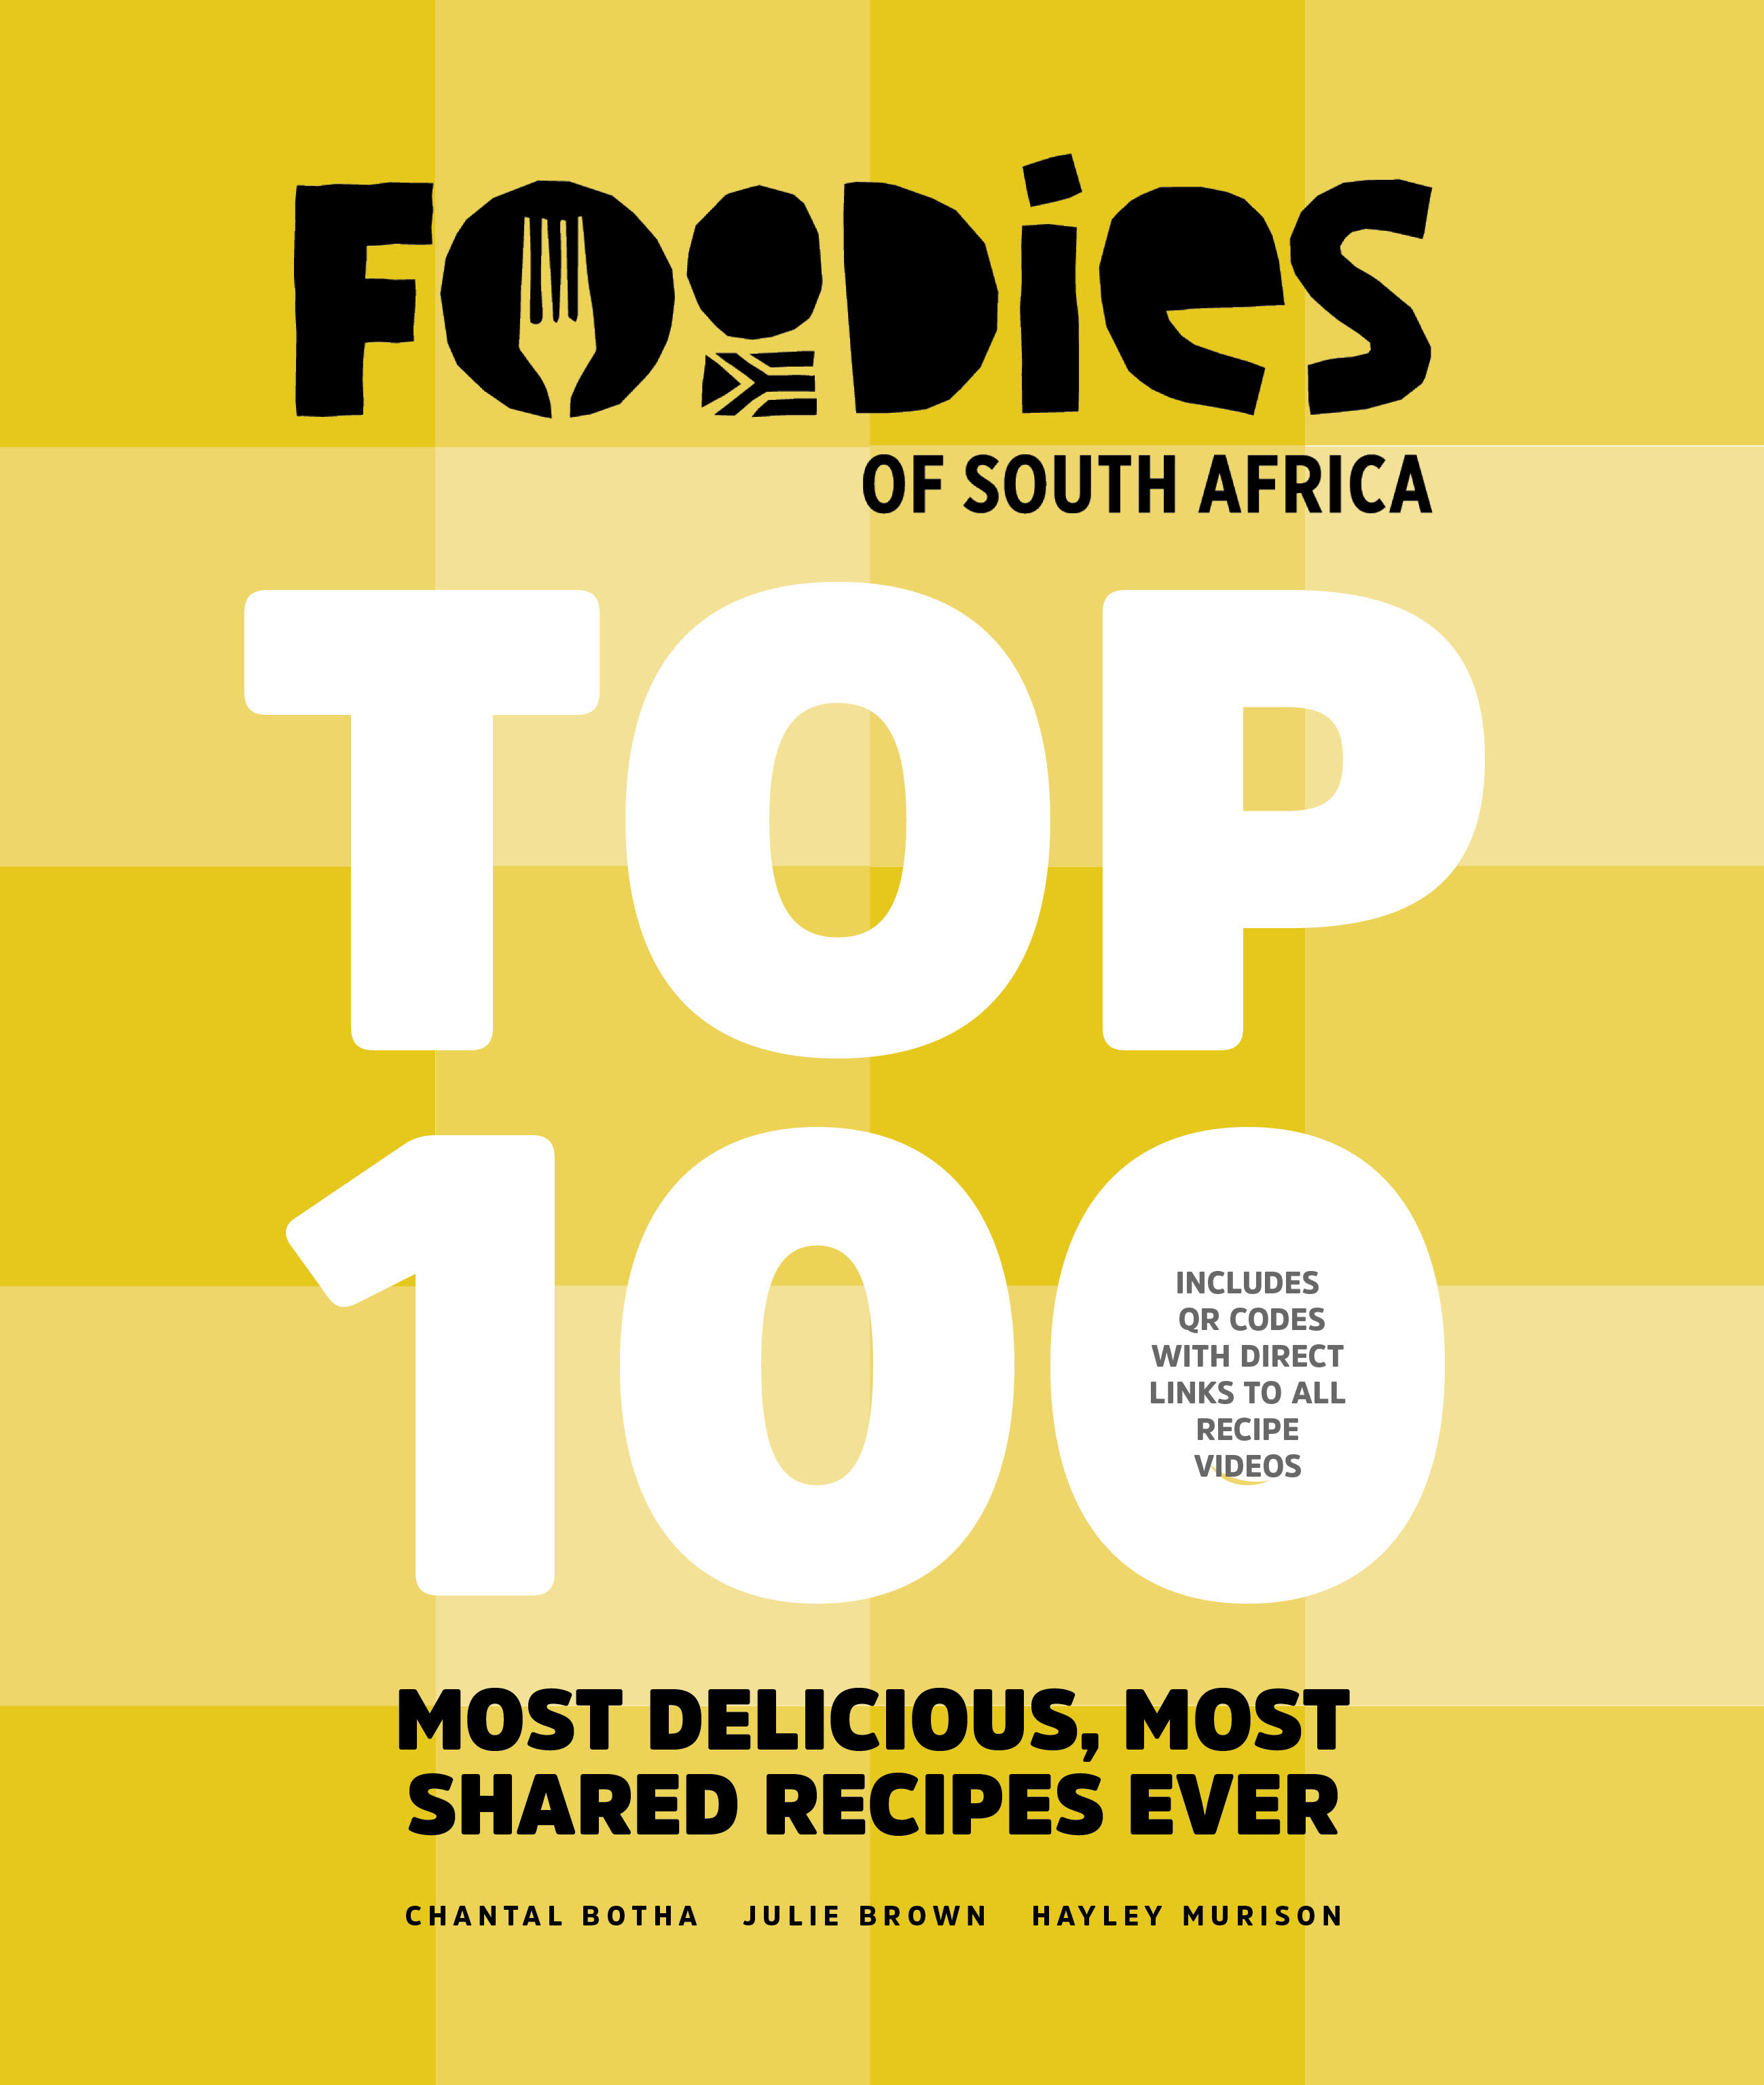 Foodies of South Africa: Top 100